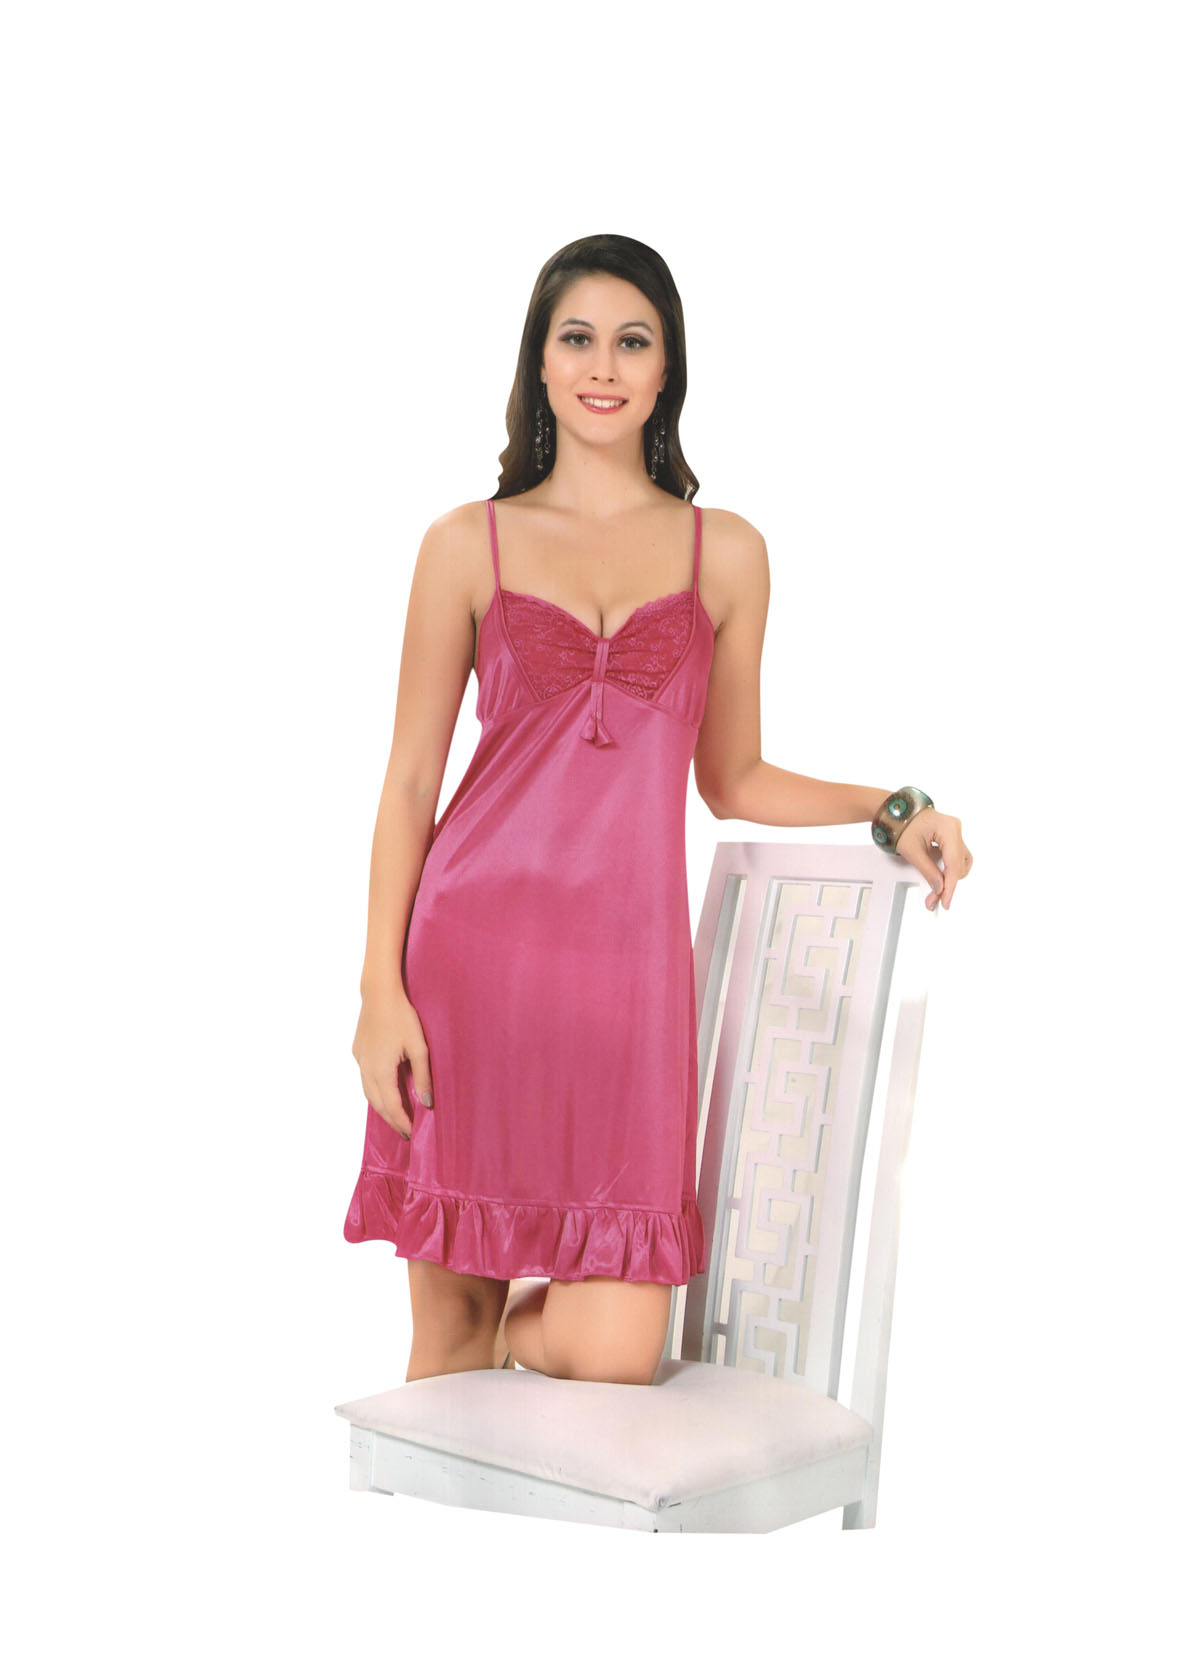 30f345b714 ... by wearing this HONEYMOON nightwear for women from Indiatrendzs. Made  from a Silk Satin Fabric